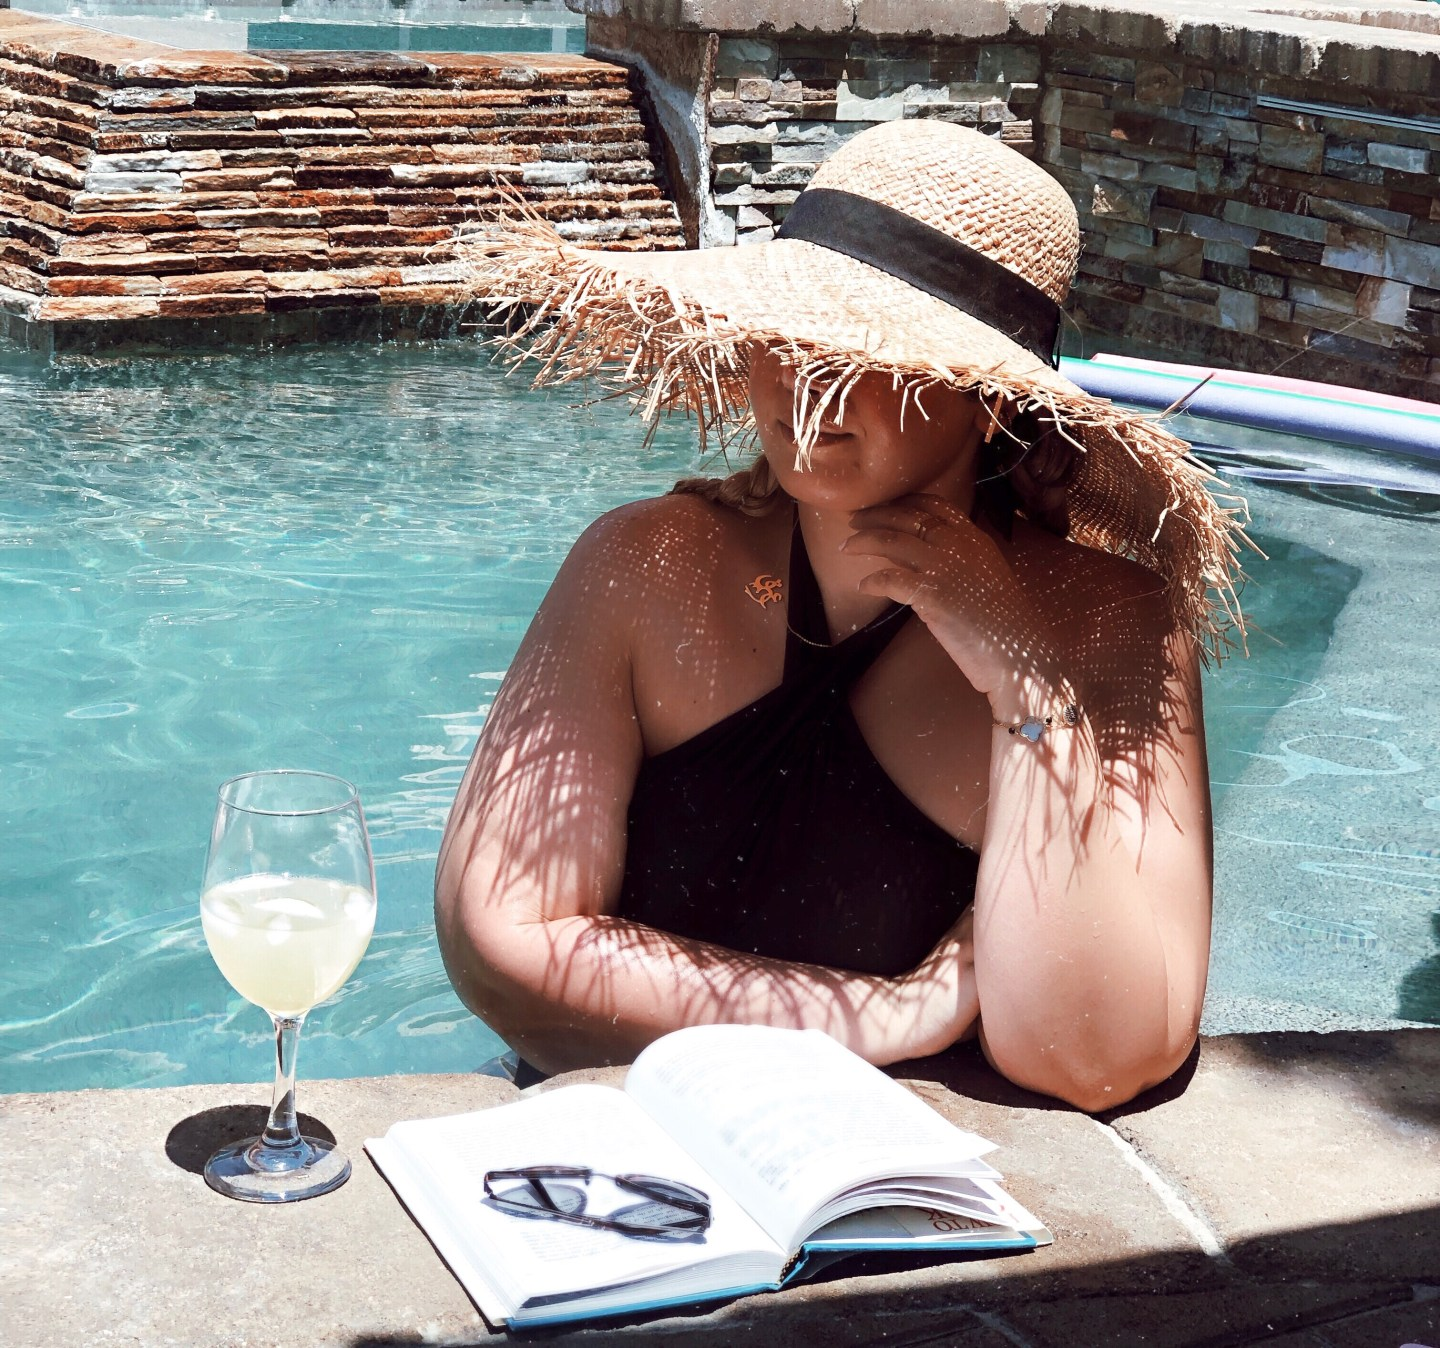   Skin & hair care after pool day or tropical vacation  